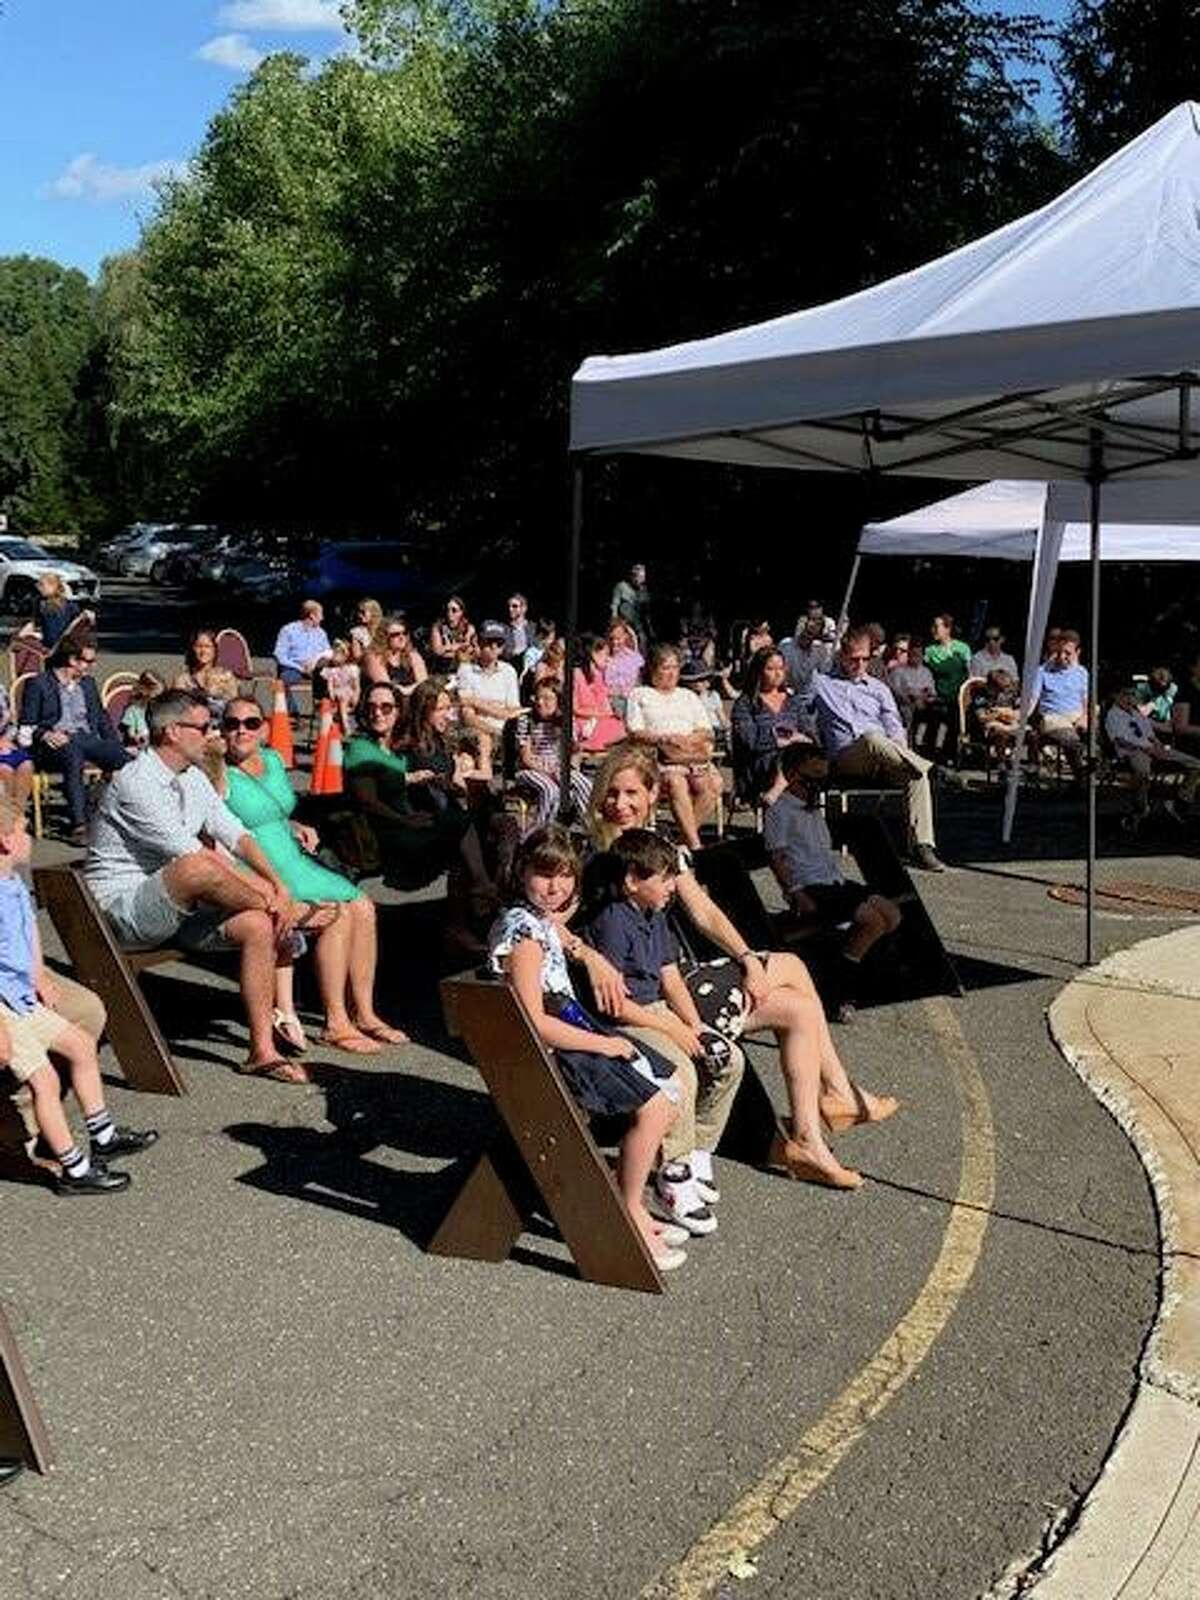 Families gather at Congregation Shir Shalom of Westchester and Fairfield Counties in Ridgefield on on Tuesday for outdoor services for Rosh Hashana.